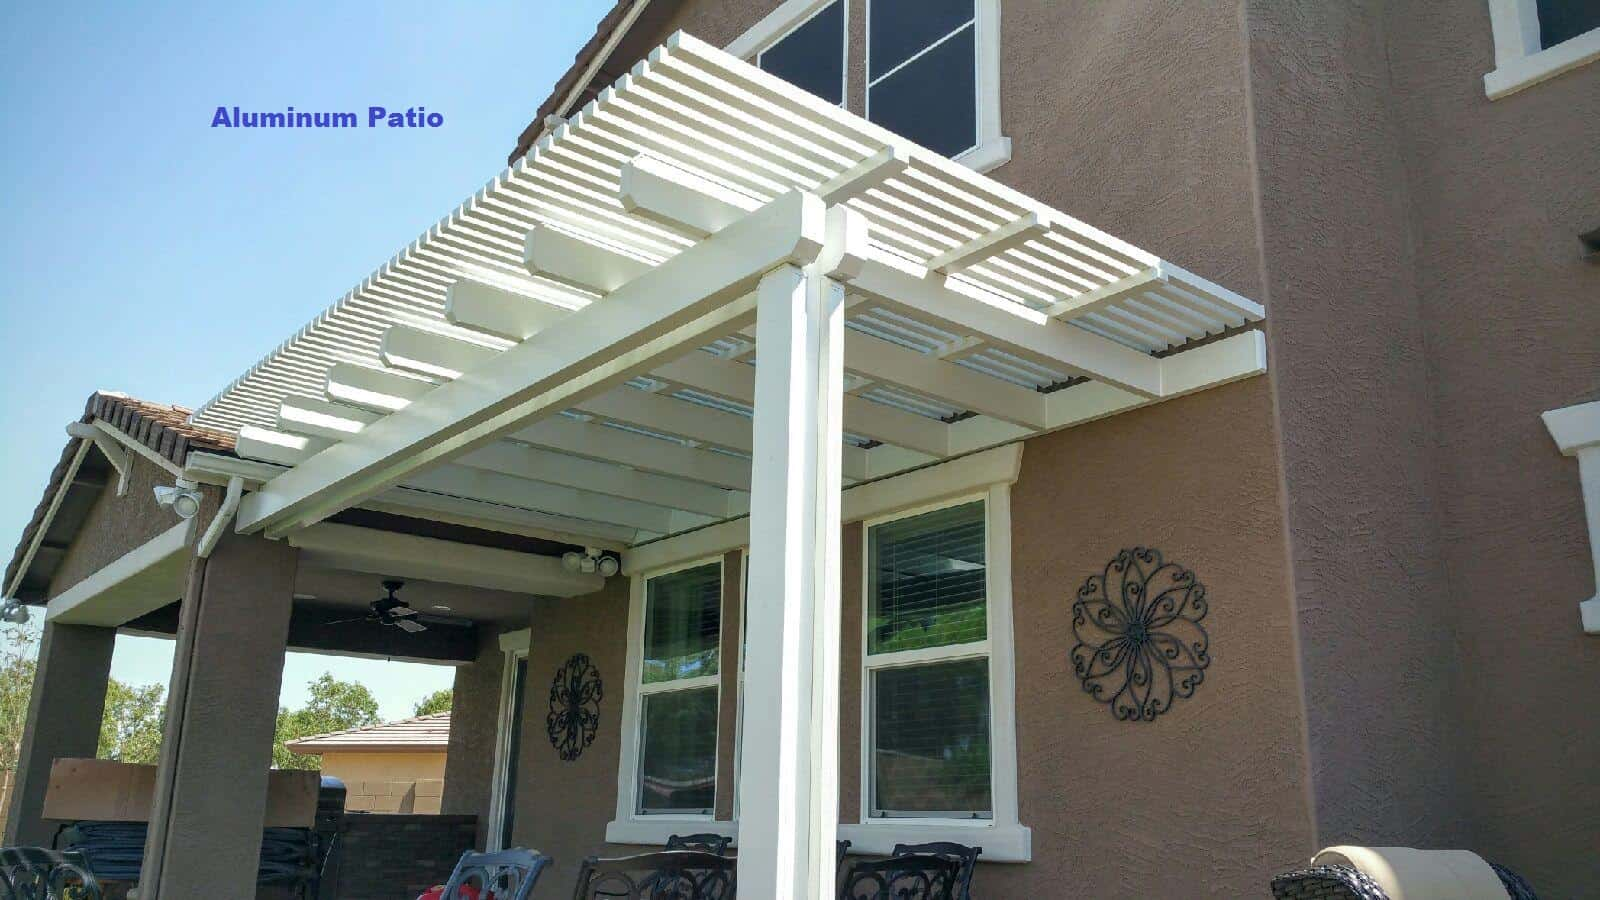 Attached Aluminum Patio